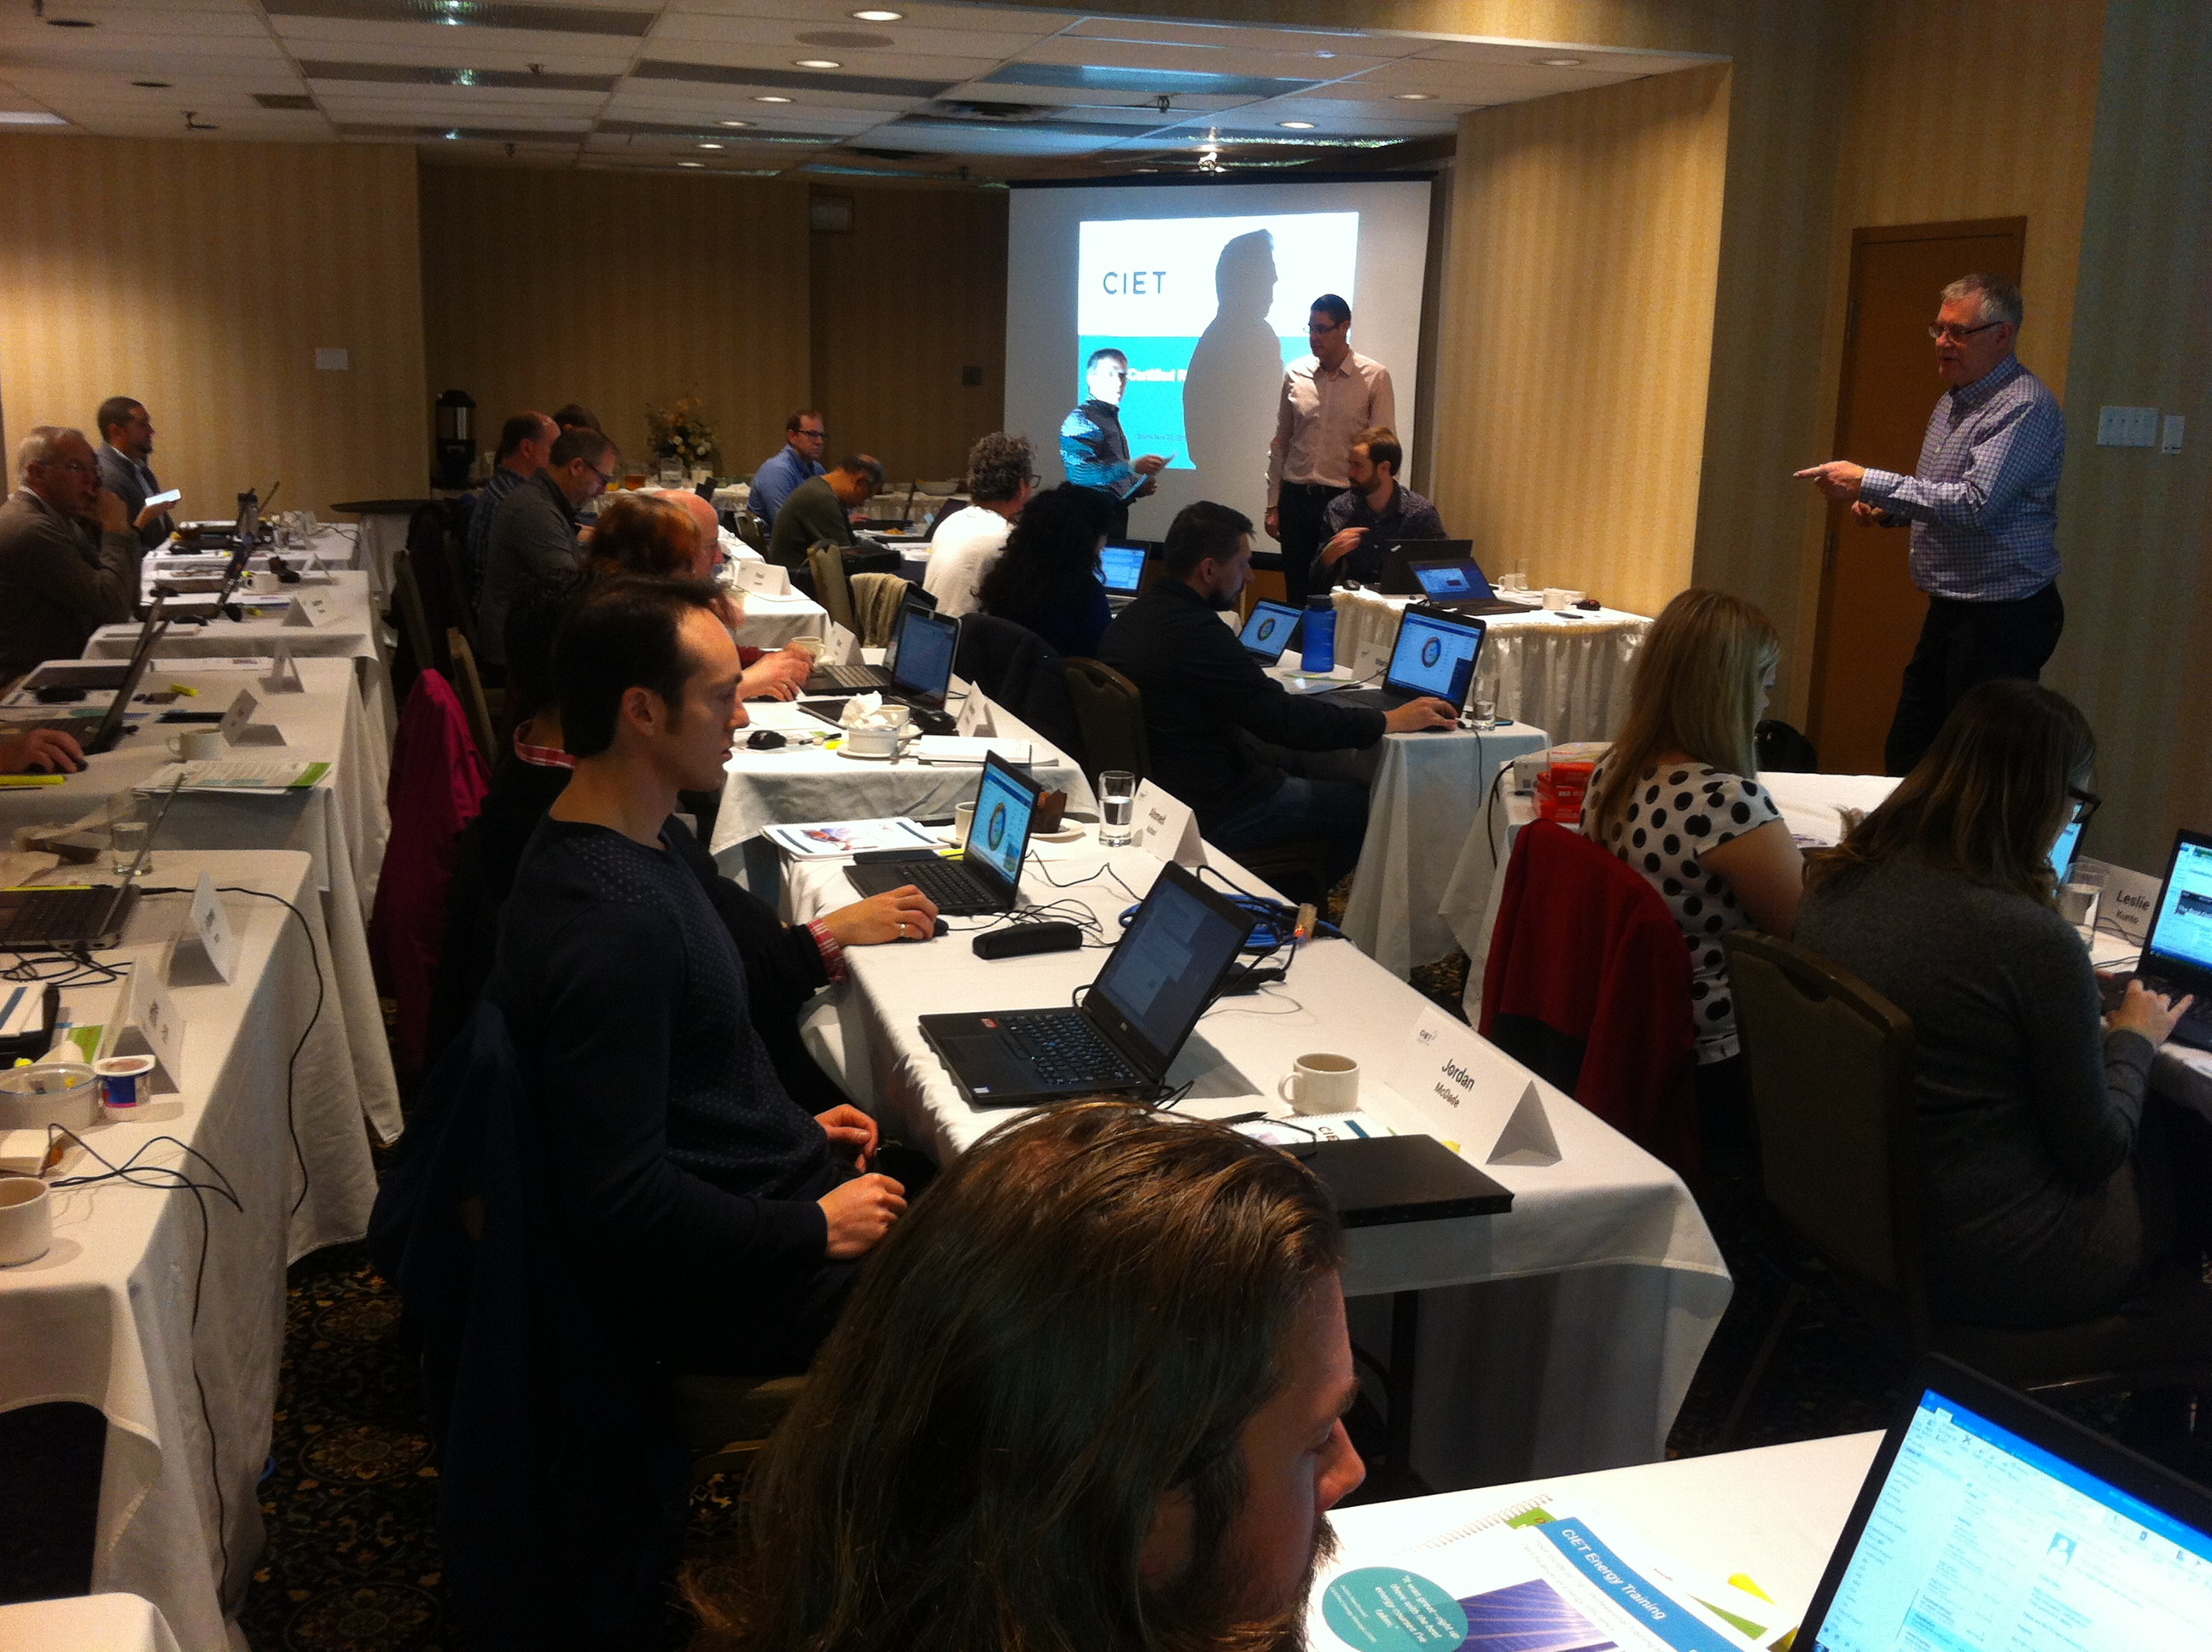 CIET's latest 3-day public RETScreen Expert Training course kicked off in Toronto